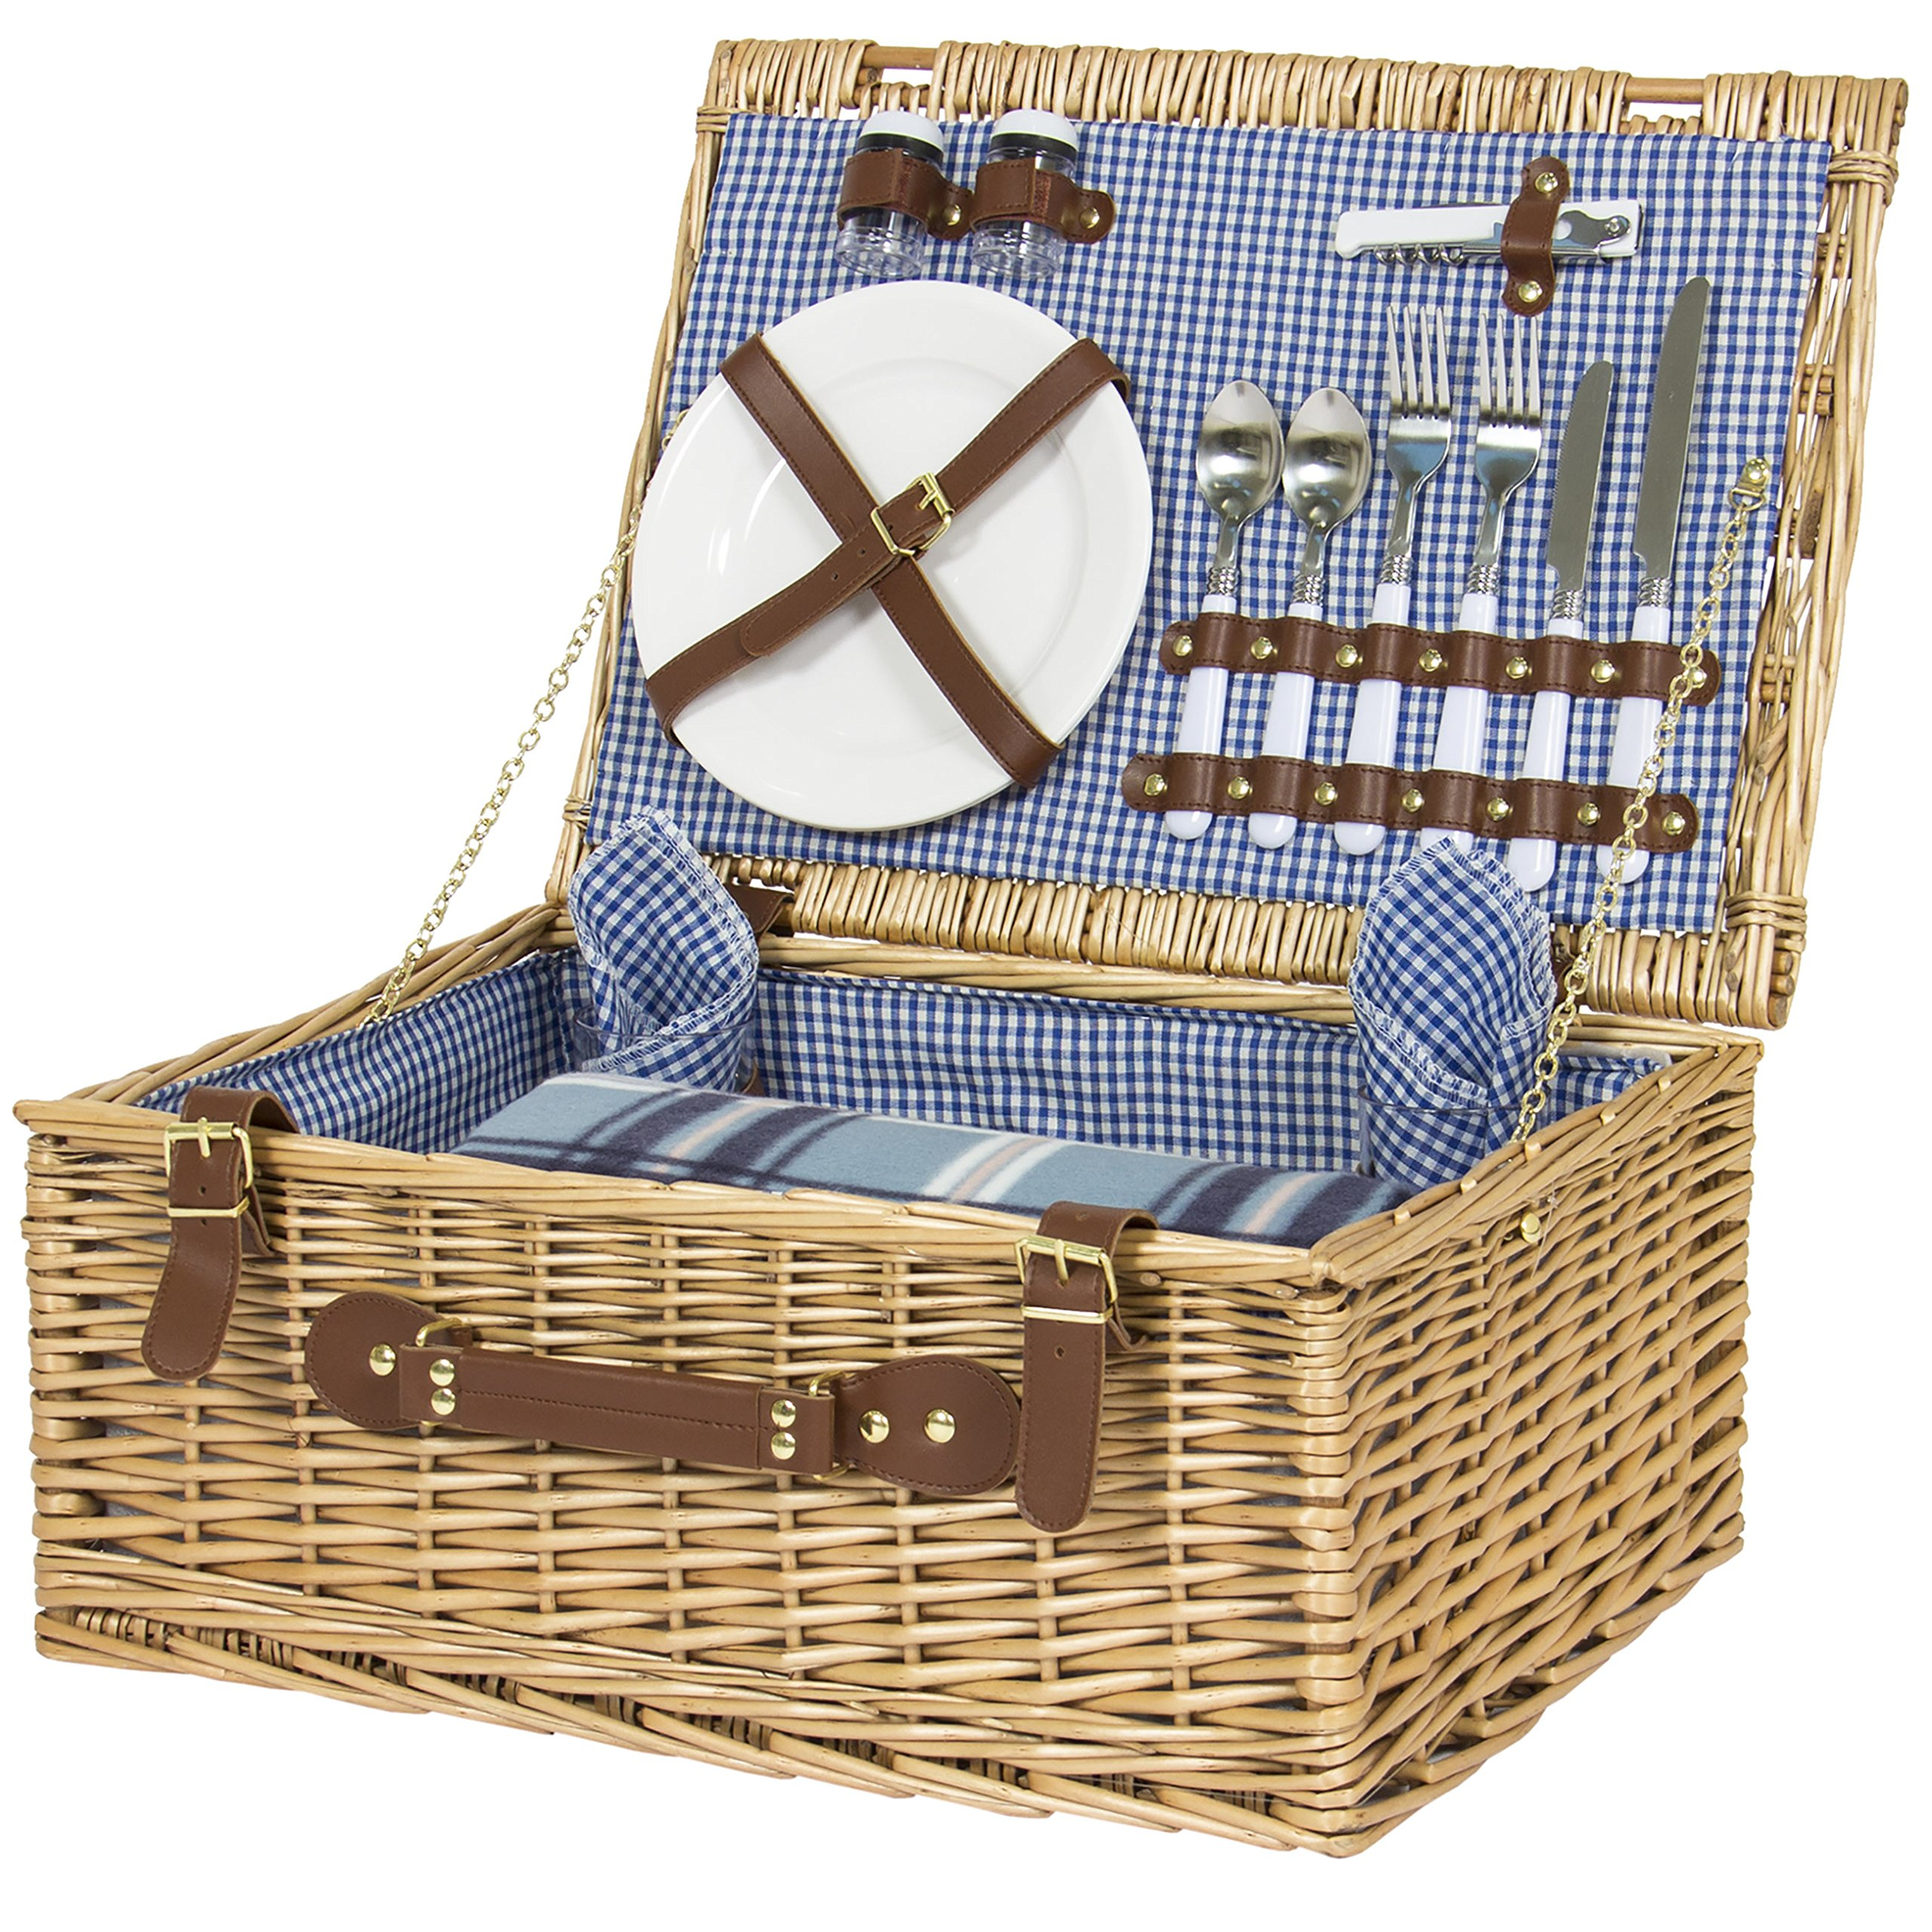 Myer Wicker Picnic Basket : Galleon best choice products person wicker picnic